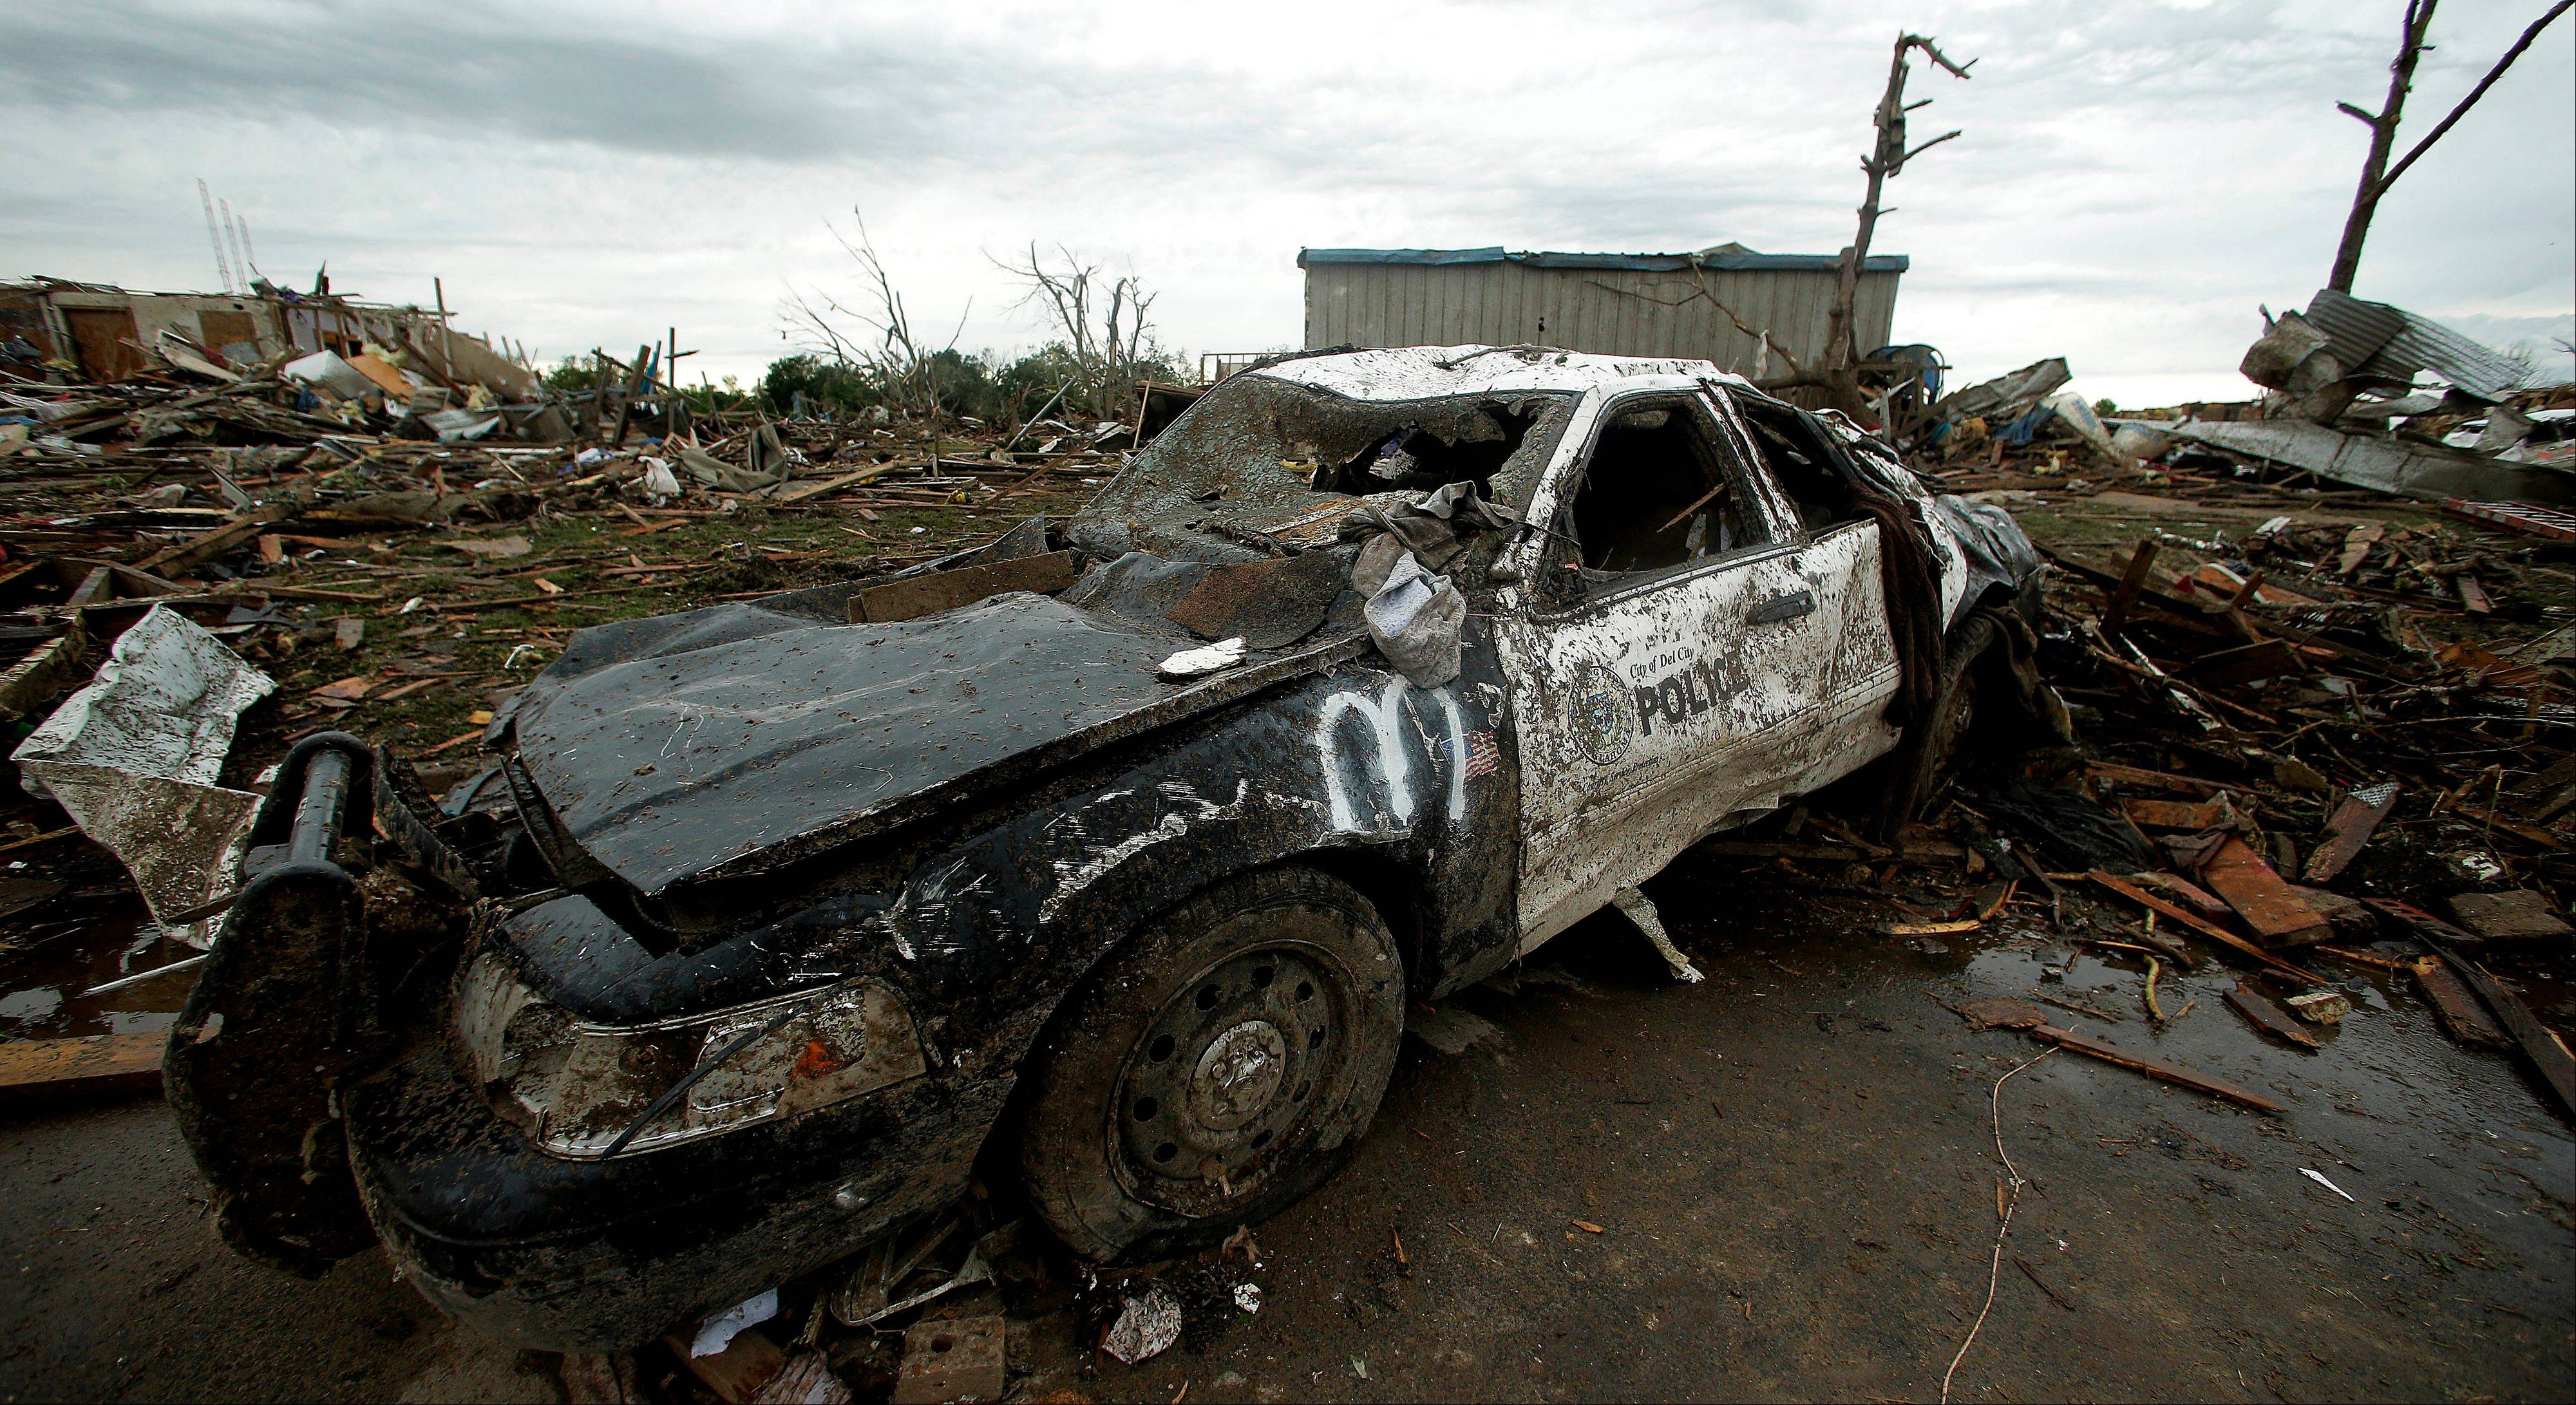 A destroyed police car sits among the debris of tornado-ravaged homes Tuesday, May 21, 2013, in Moore, Okla. A huge tornado roared through the Oklahoma City suburb Monday, flattening an entire neighborhoods and destroying an elementary school with a direct blow as children and teachers huddled against winds.